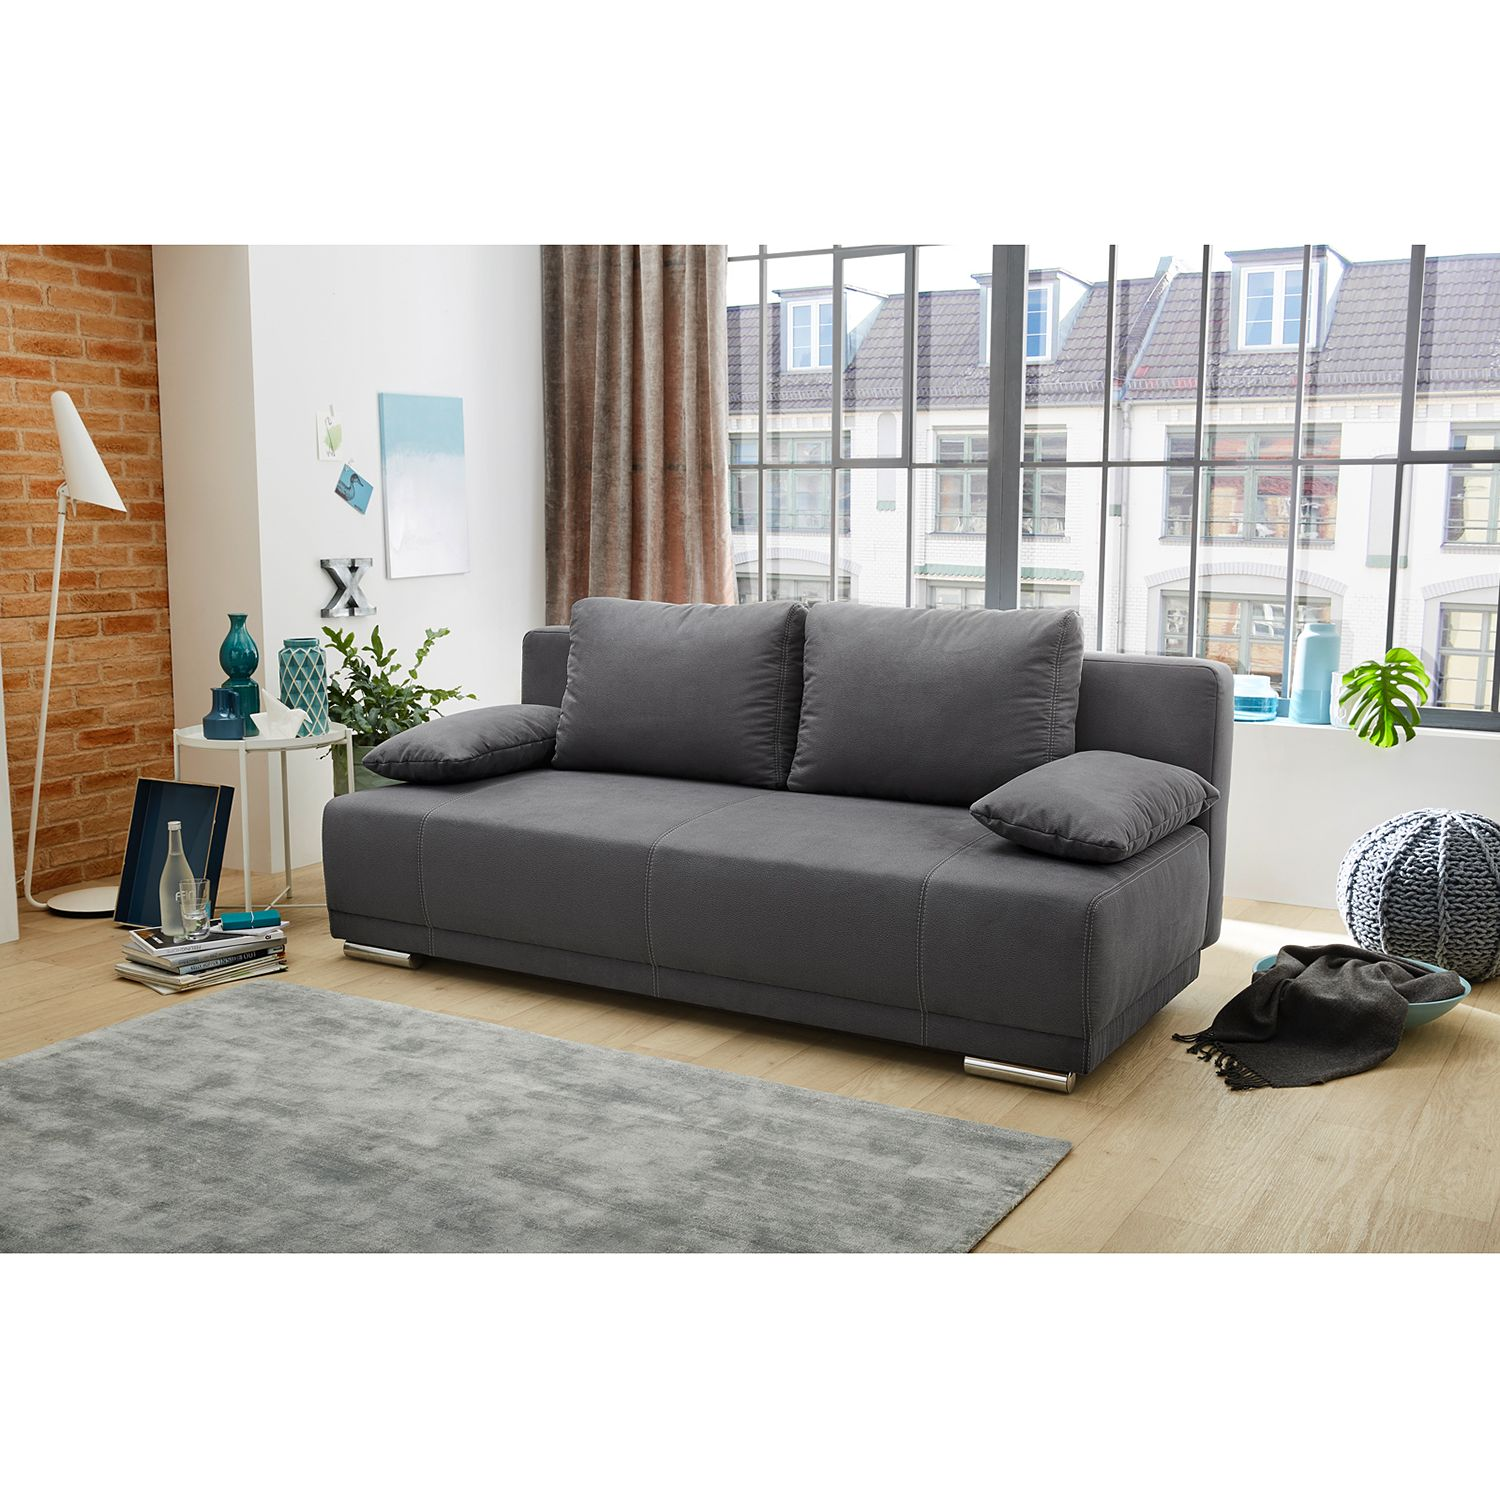 home24 Schlafsofa Freeland